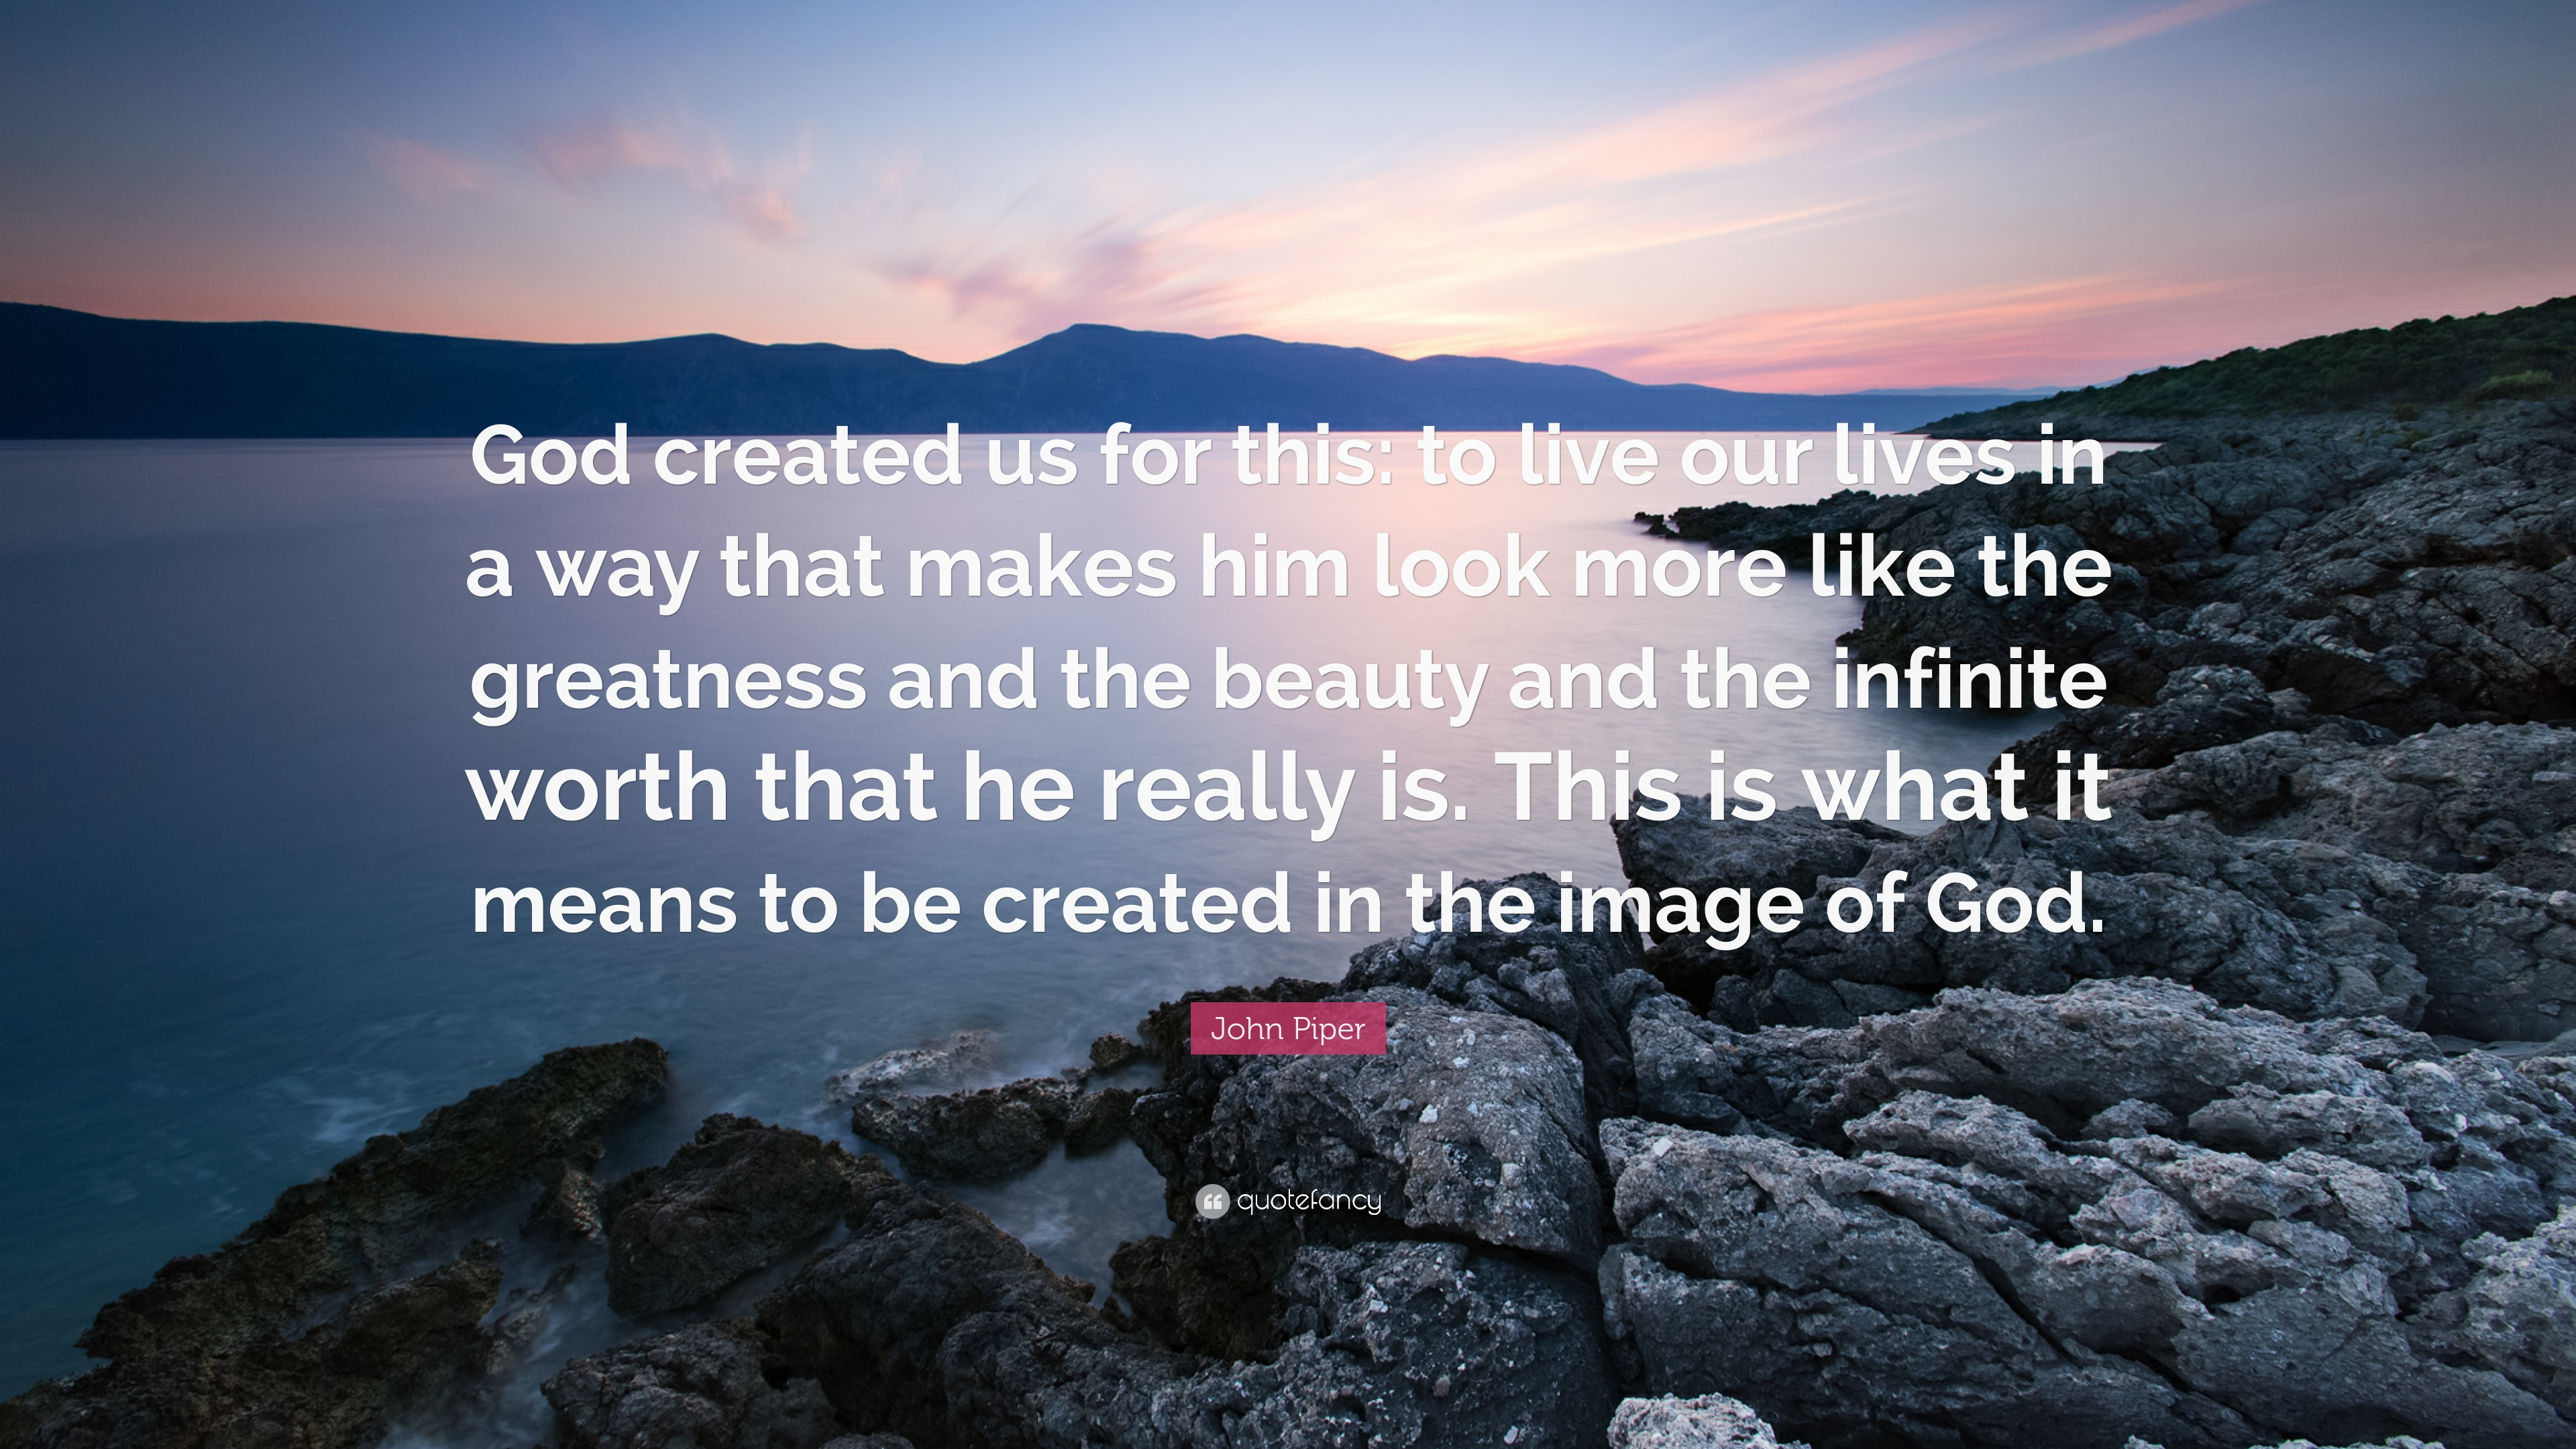 God created us to be with him